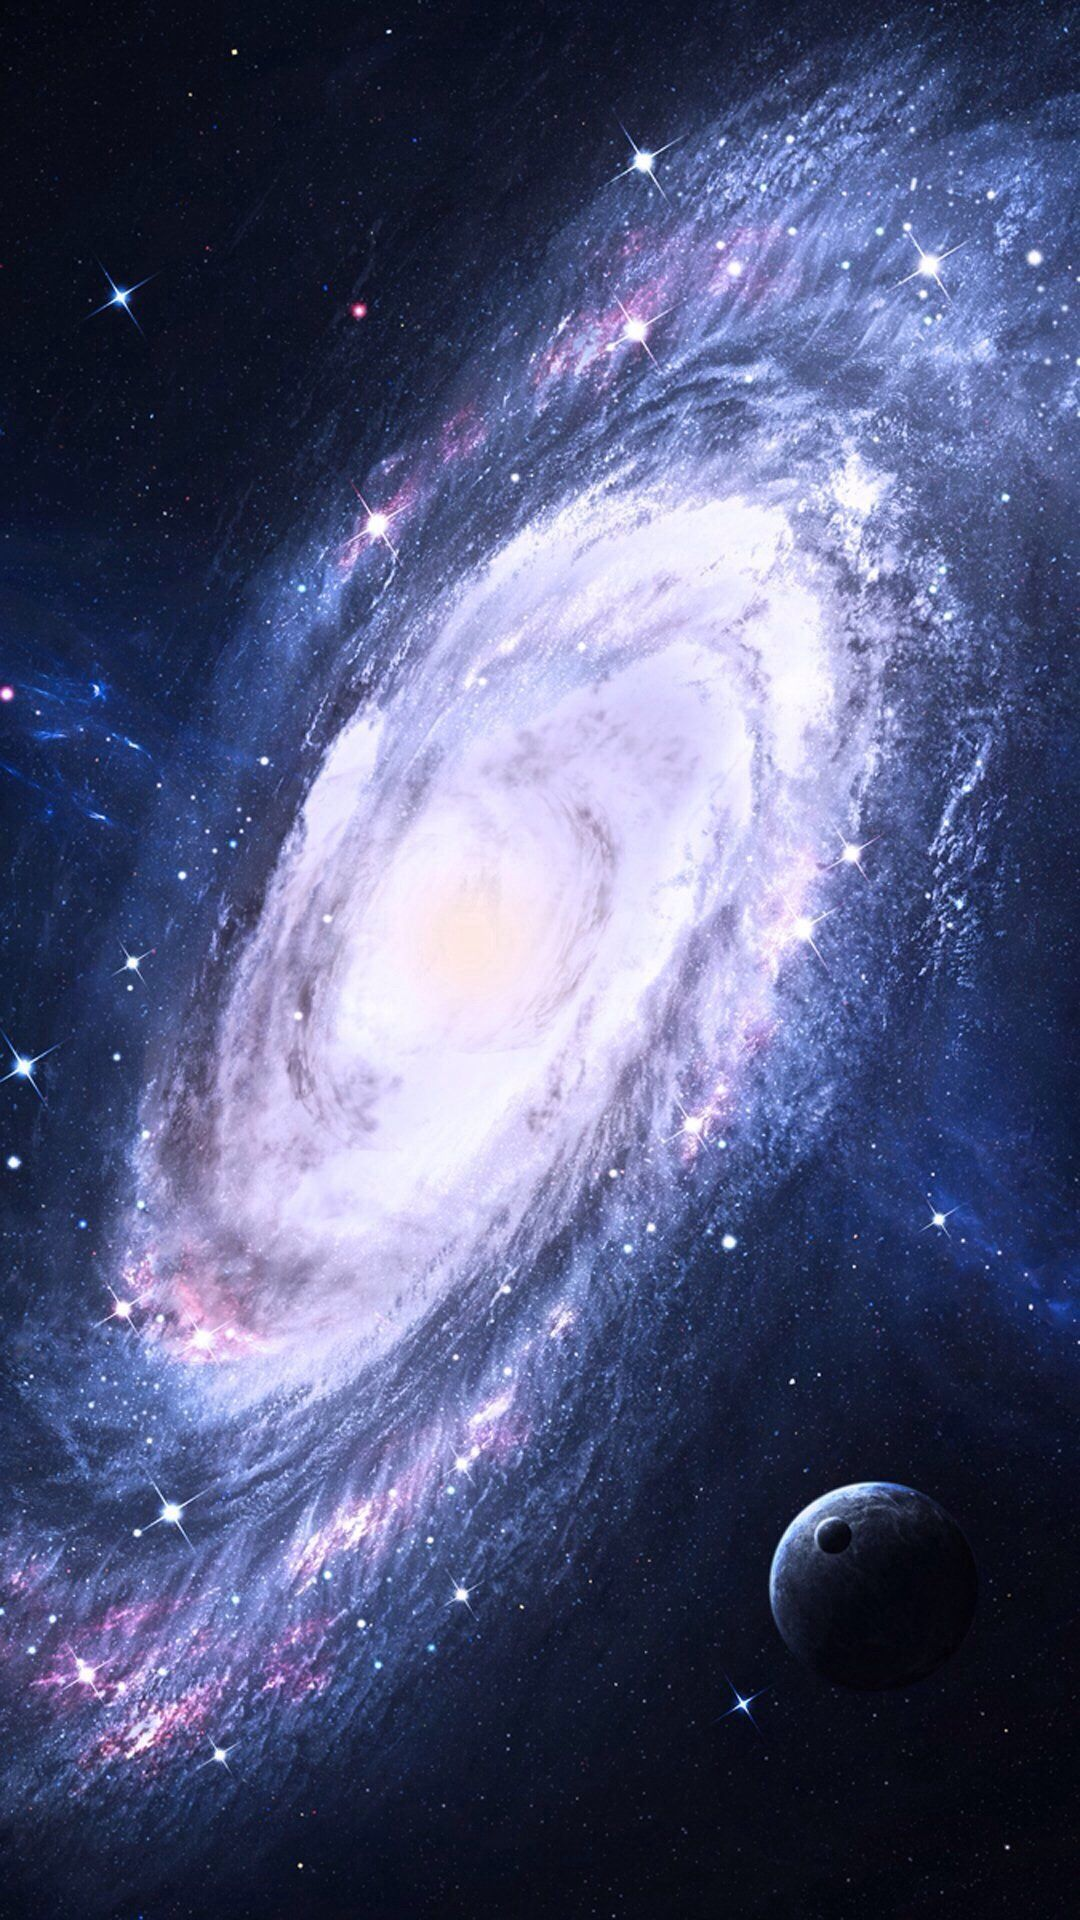 Galaxy Spiral Galaxy Outer Space Universe Milky Way Astronomical Object Andromeda Galaxy Galaxy Wallpaper Spiral Galaxy